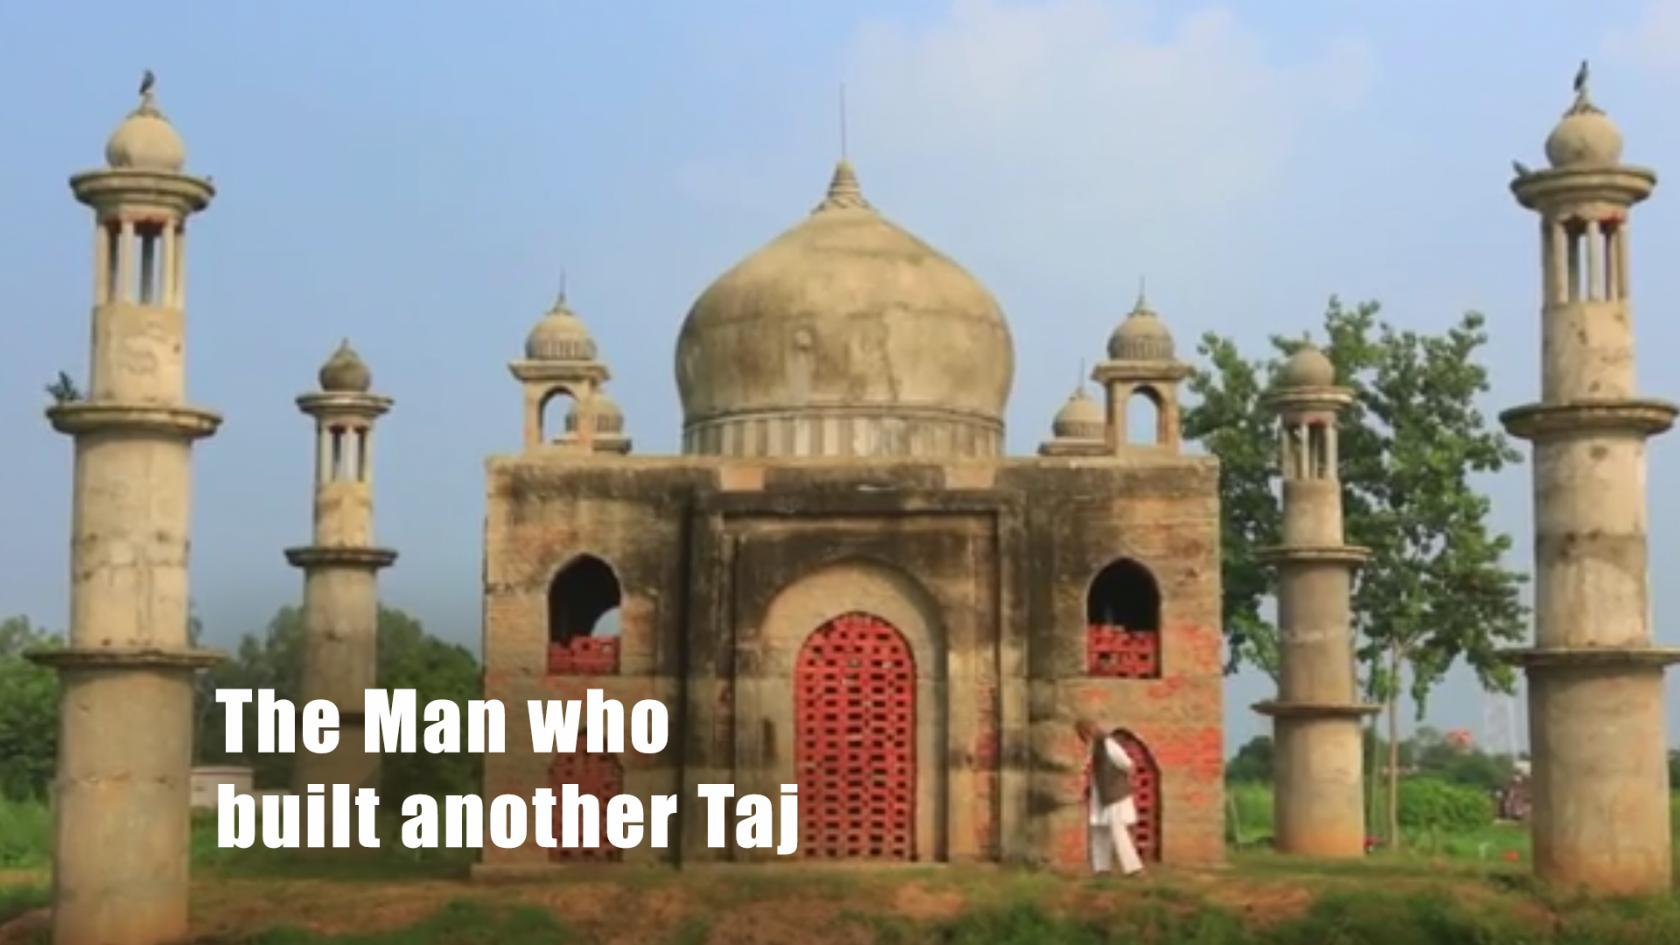 The Man Who Built Another Taj